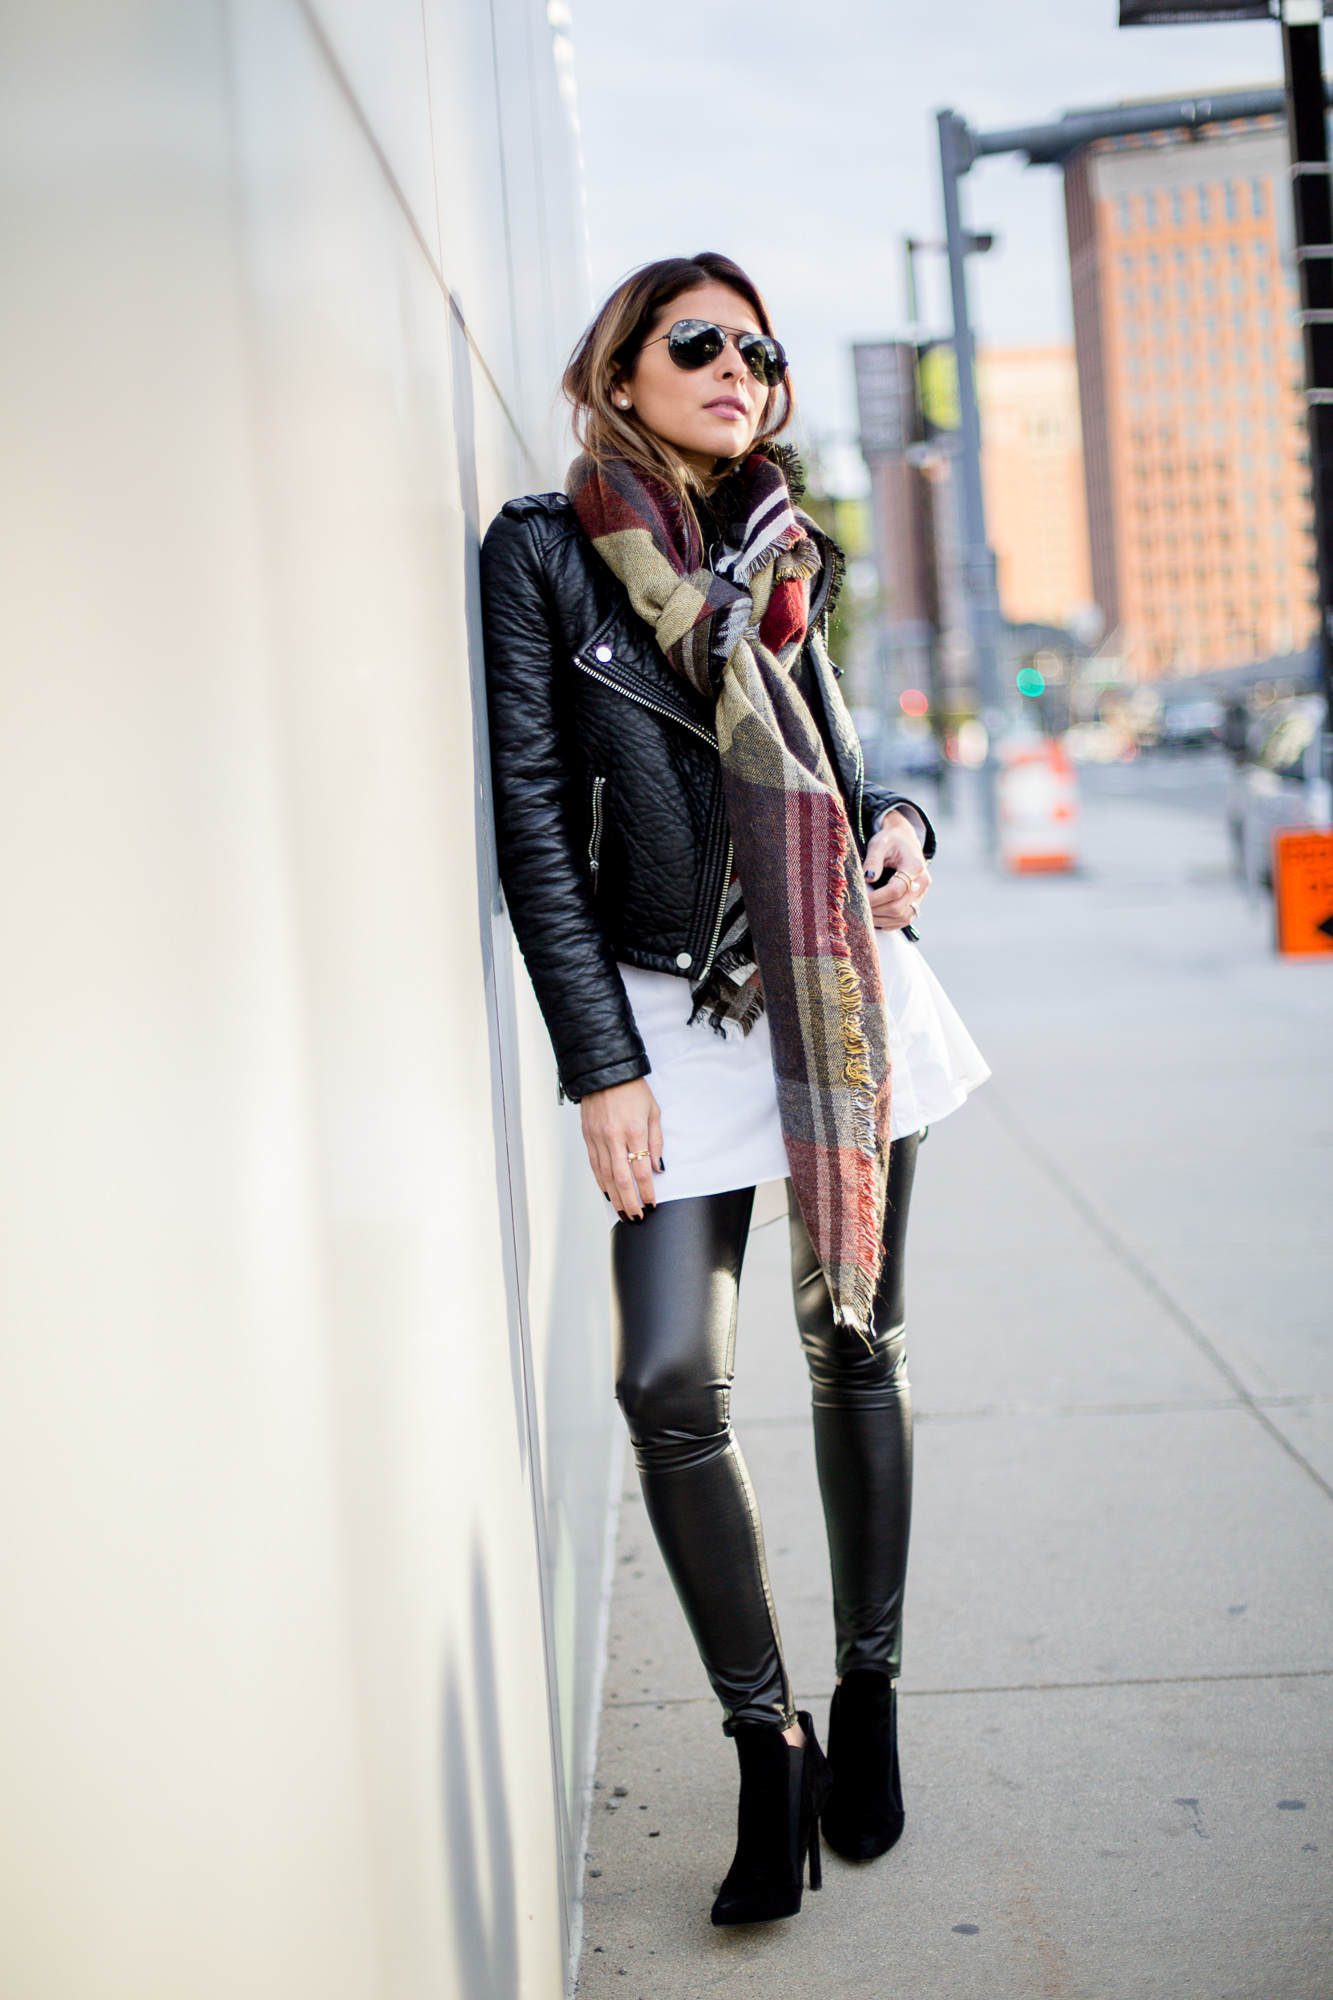 Pam Hetlinger dares to wear leather on leather in a badass leggings and jacket combo. Jacket: Moto, Top: Shopbop, Booties/Leggings: Nordstrom.